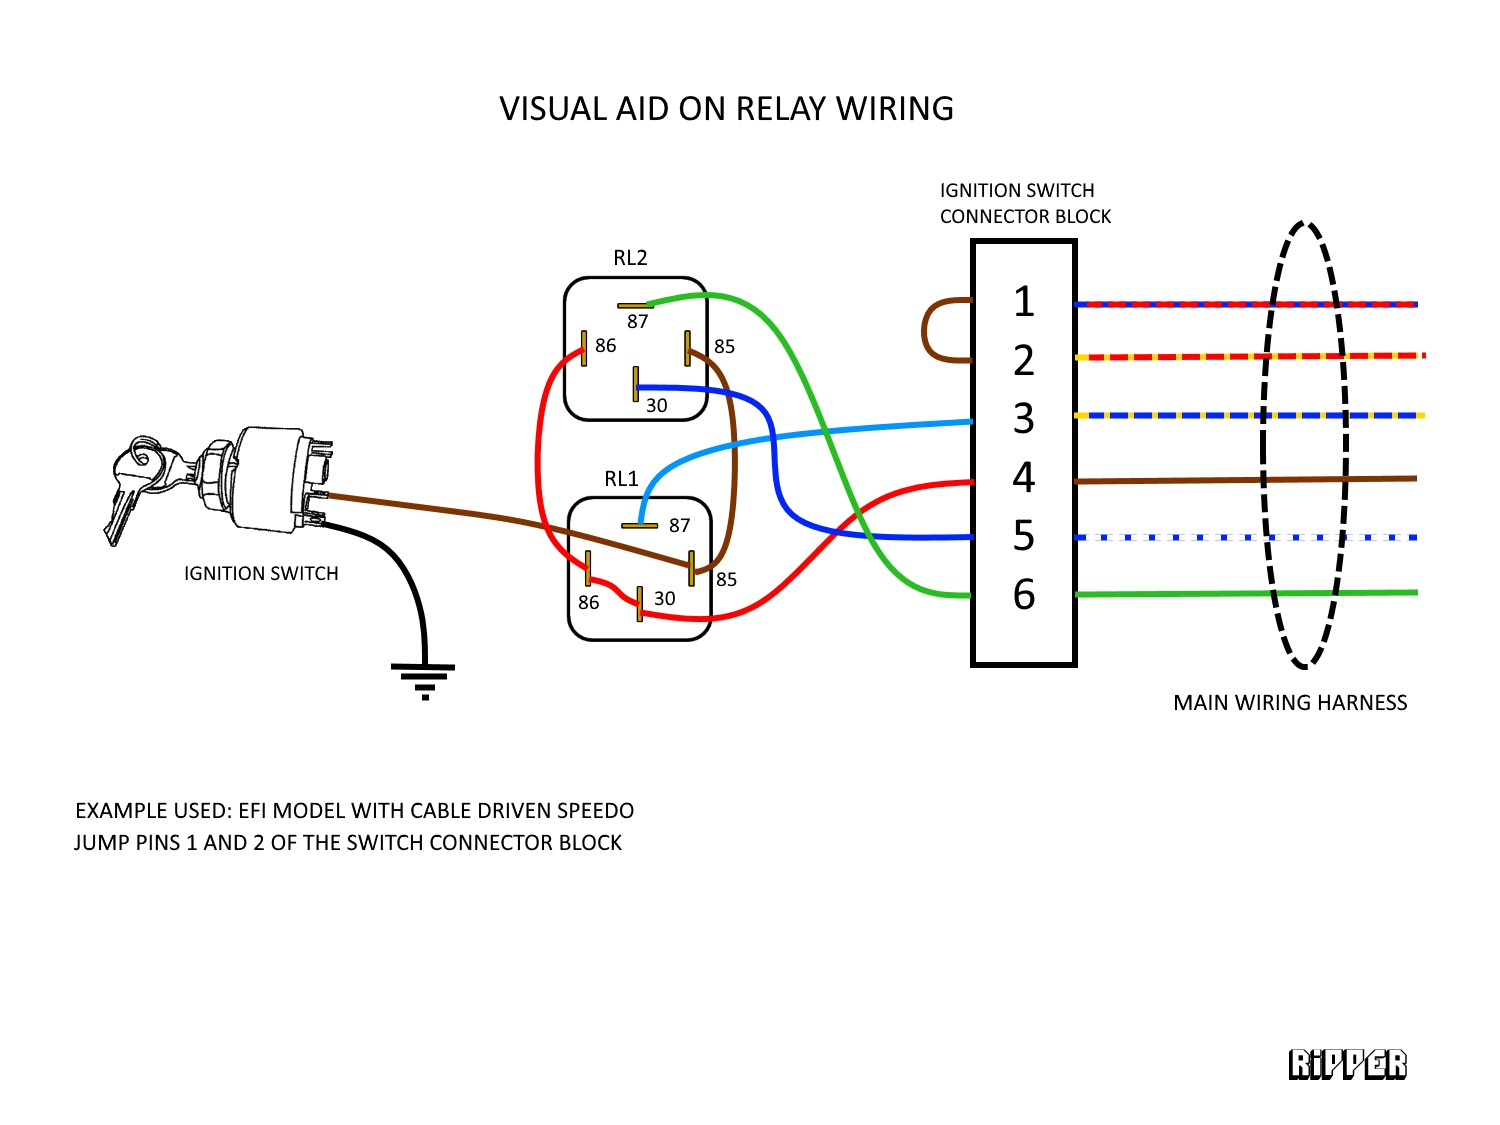 Switch Ok Then Here Is Your Wiring Diagram With The Ignition Switch